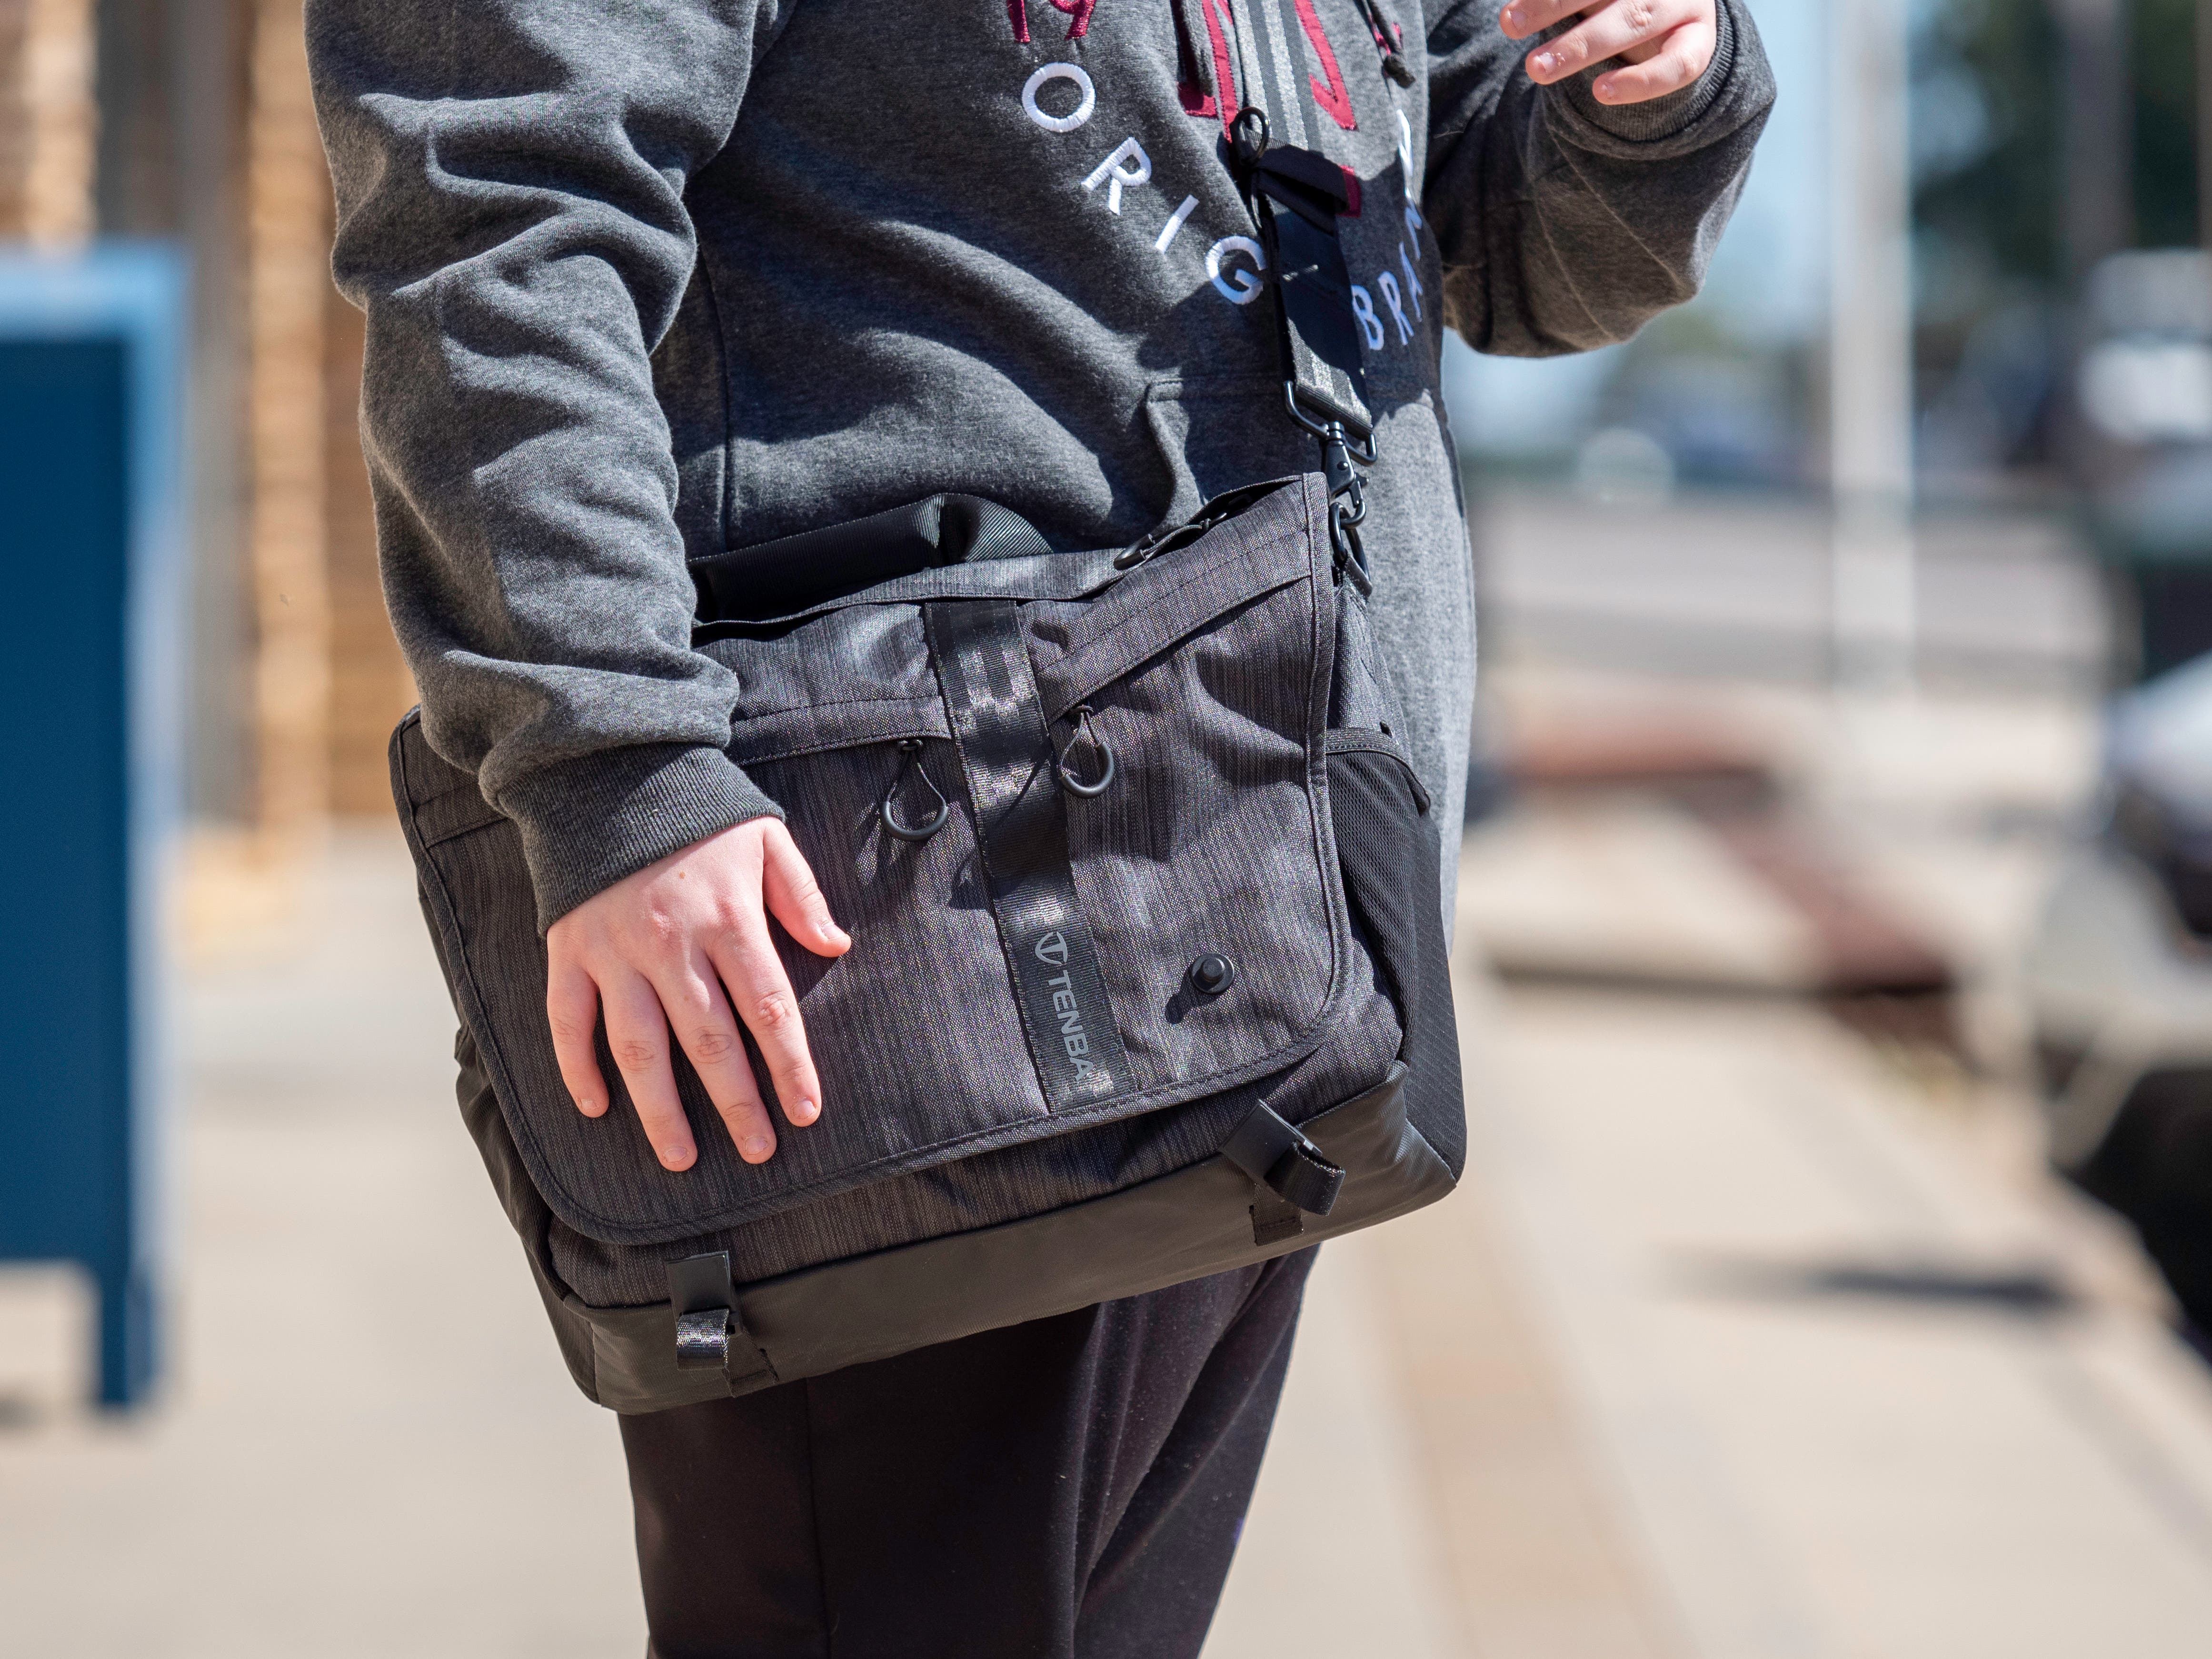 3 Camera Messenger Bags Our Photographers Use All the Time